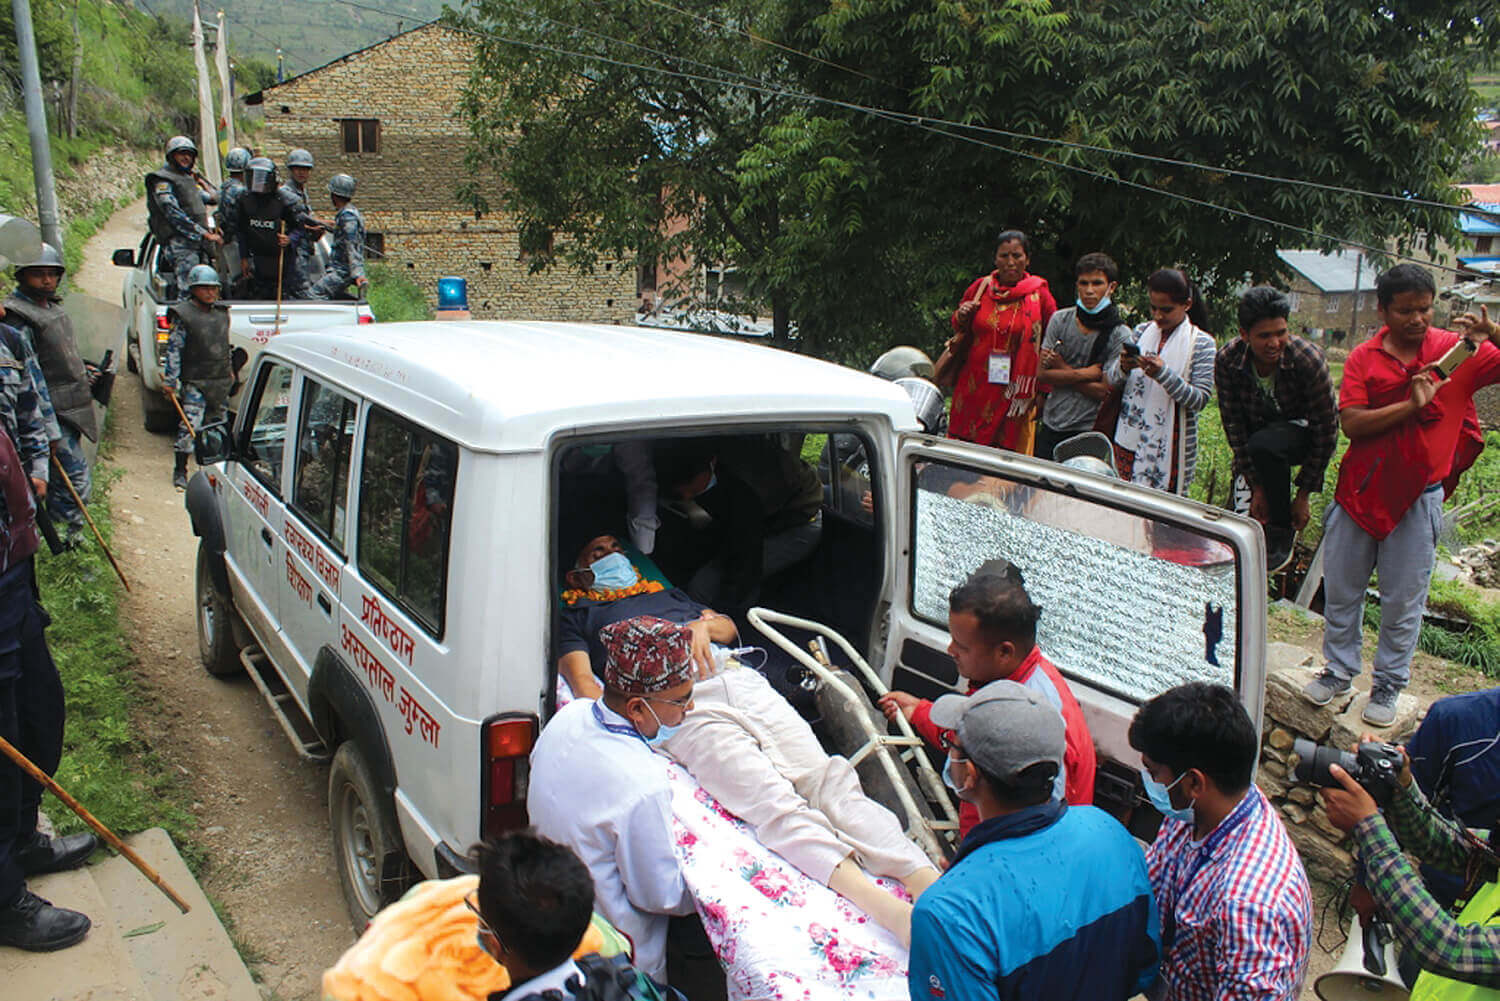 Govinda KC being brought to Kathmandu